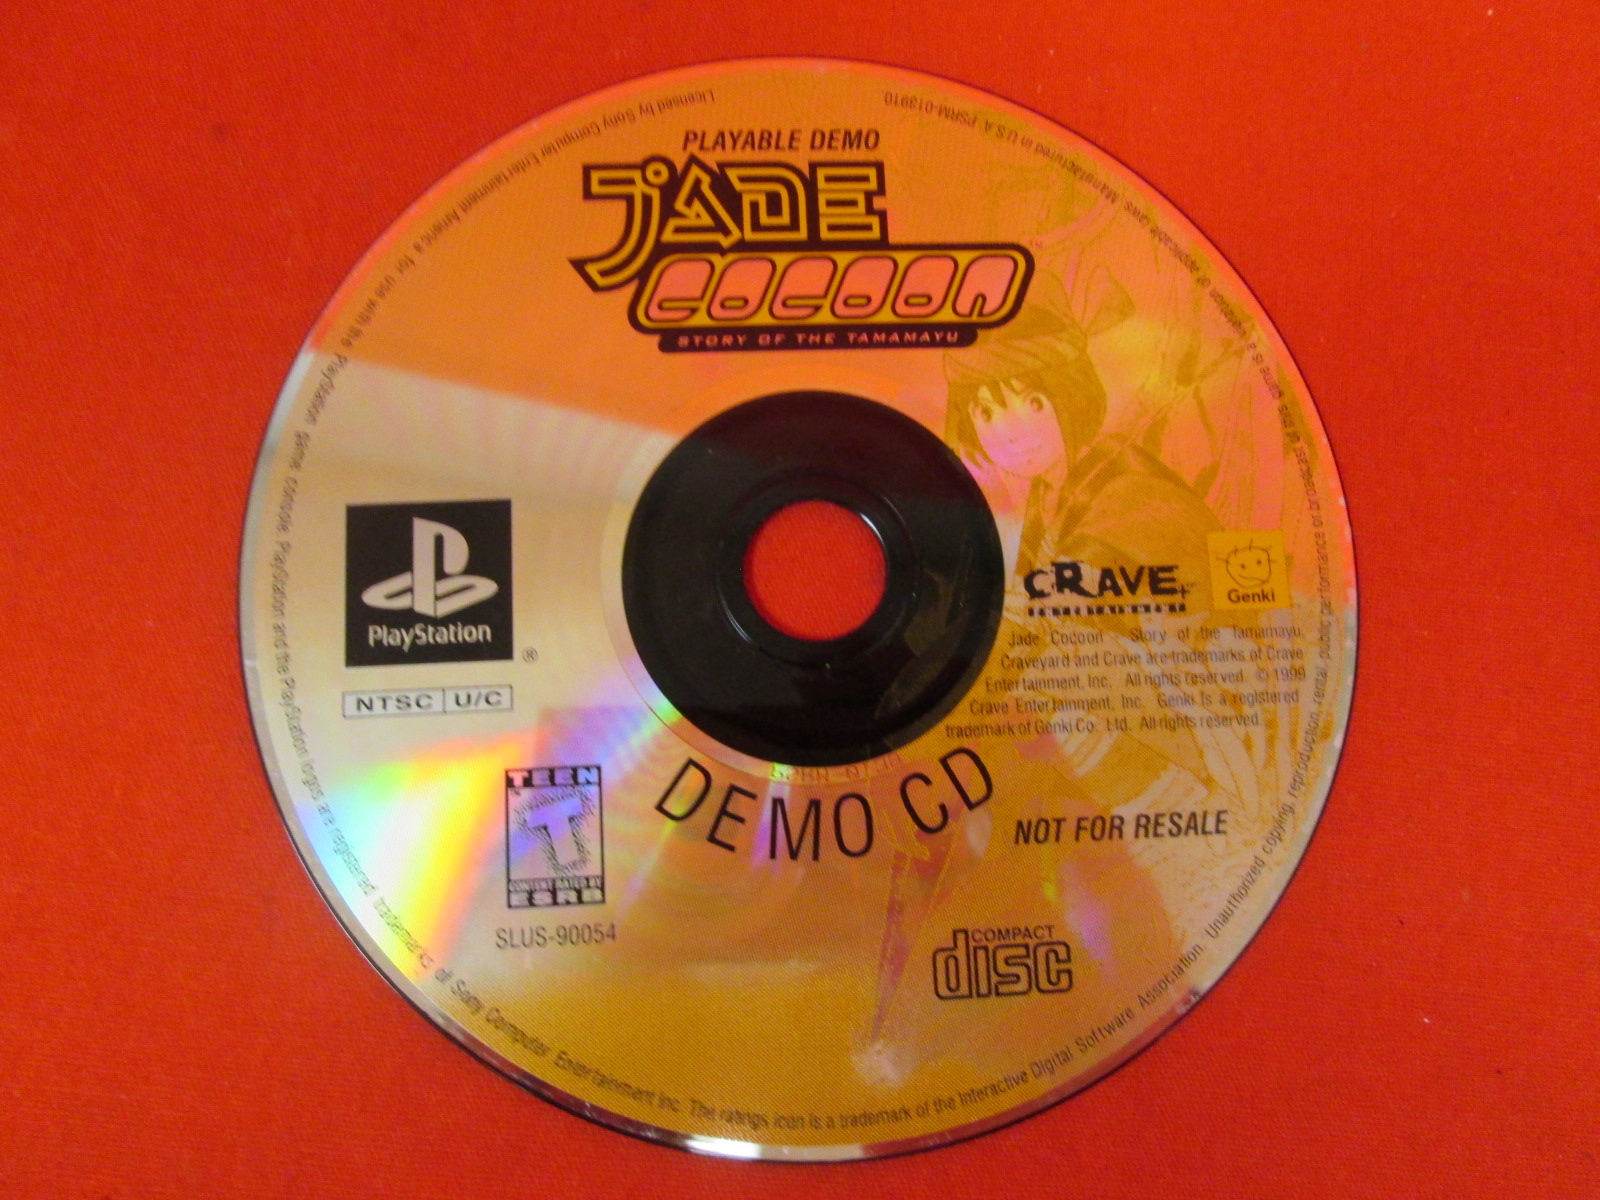 Demo CD Jade Cocoon: Story Of Tamamayu For PlayStation 1